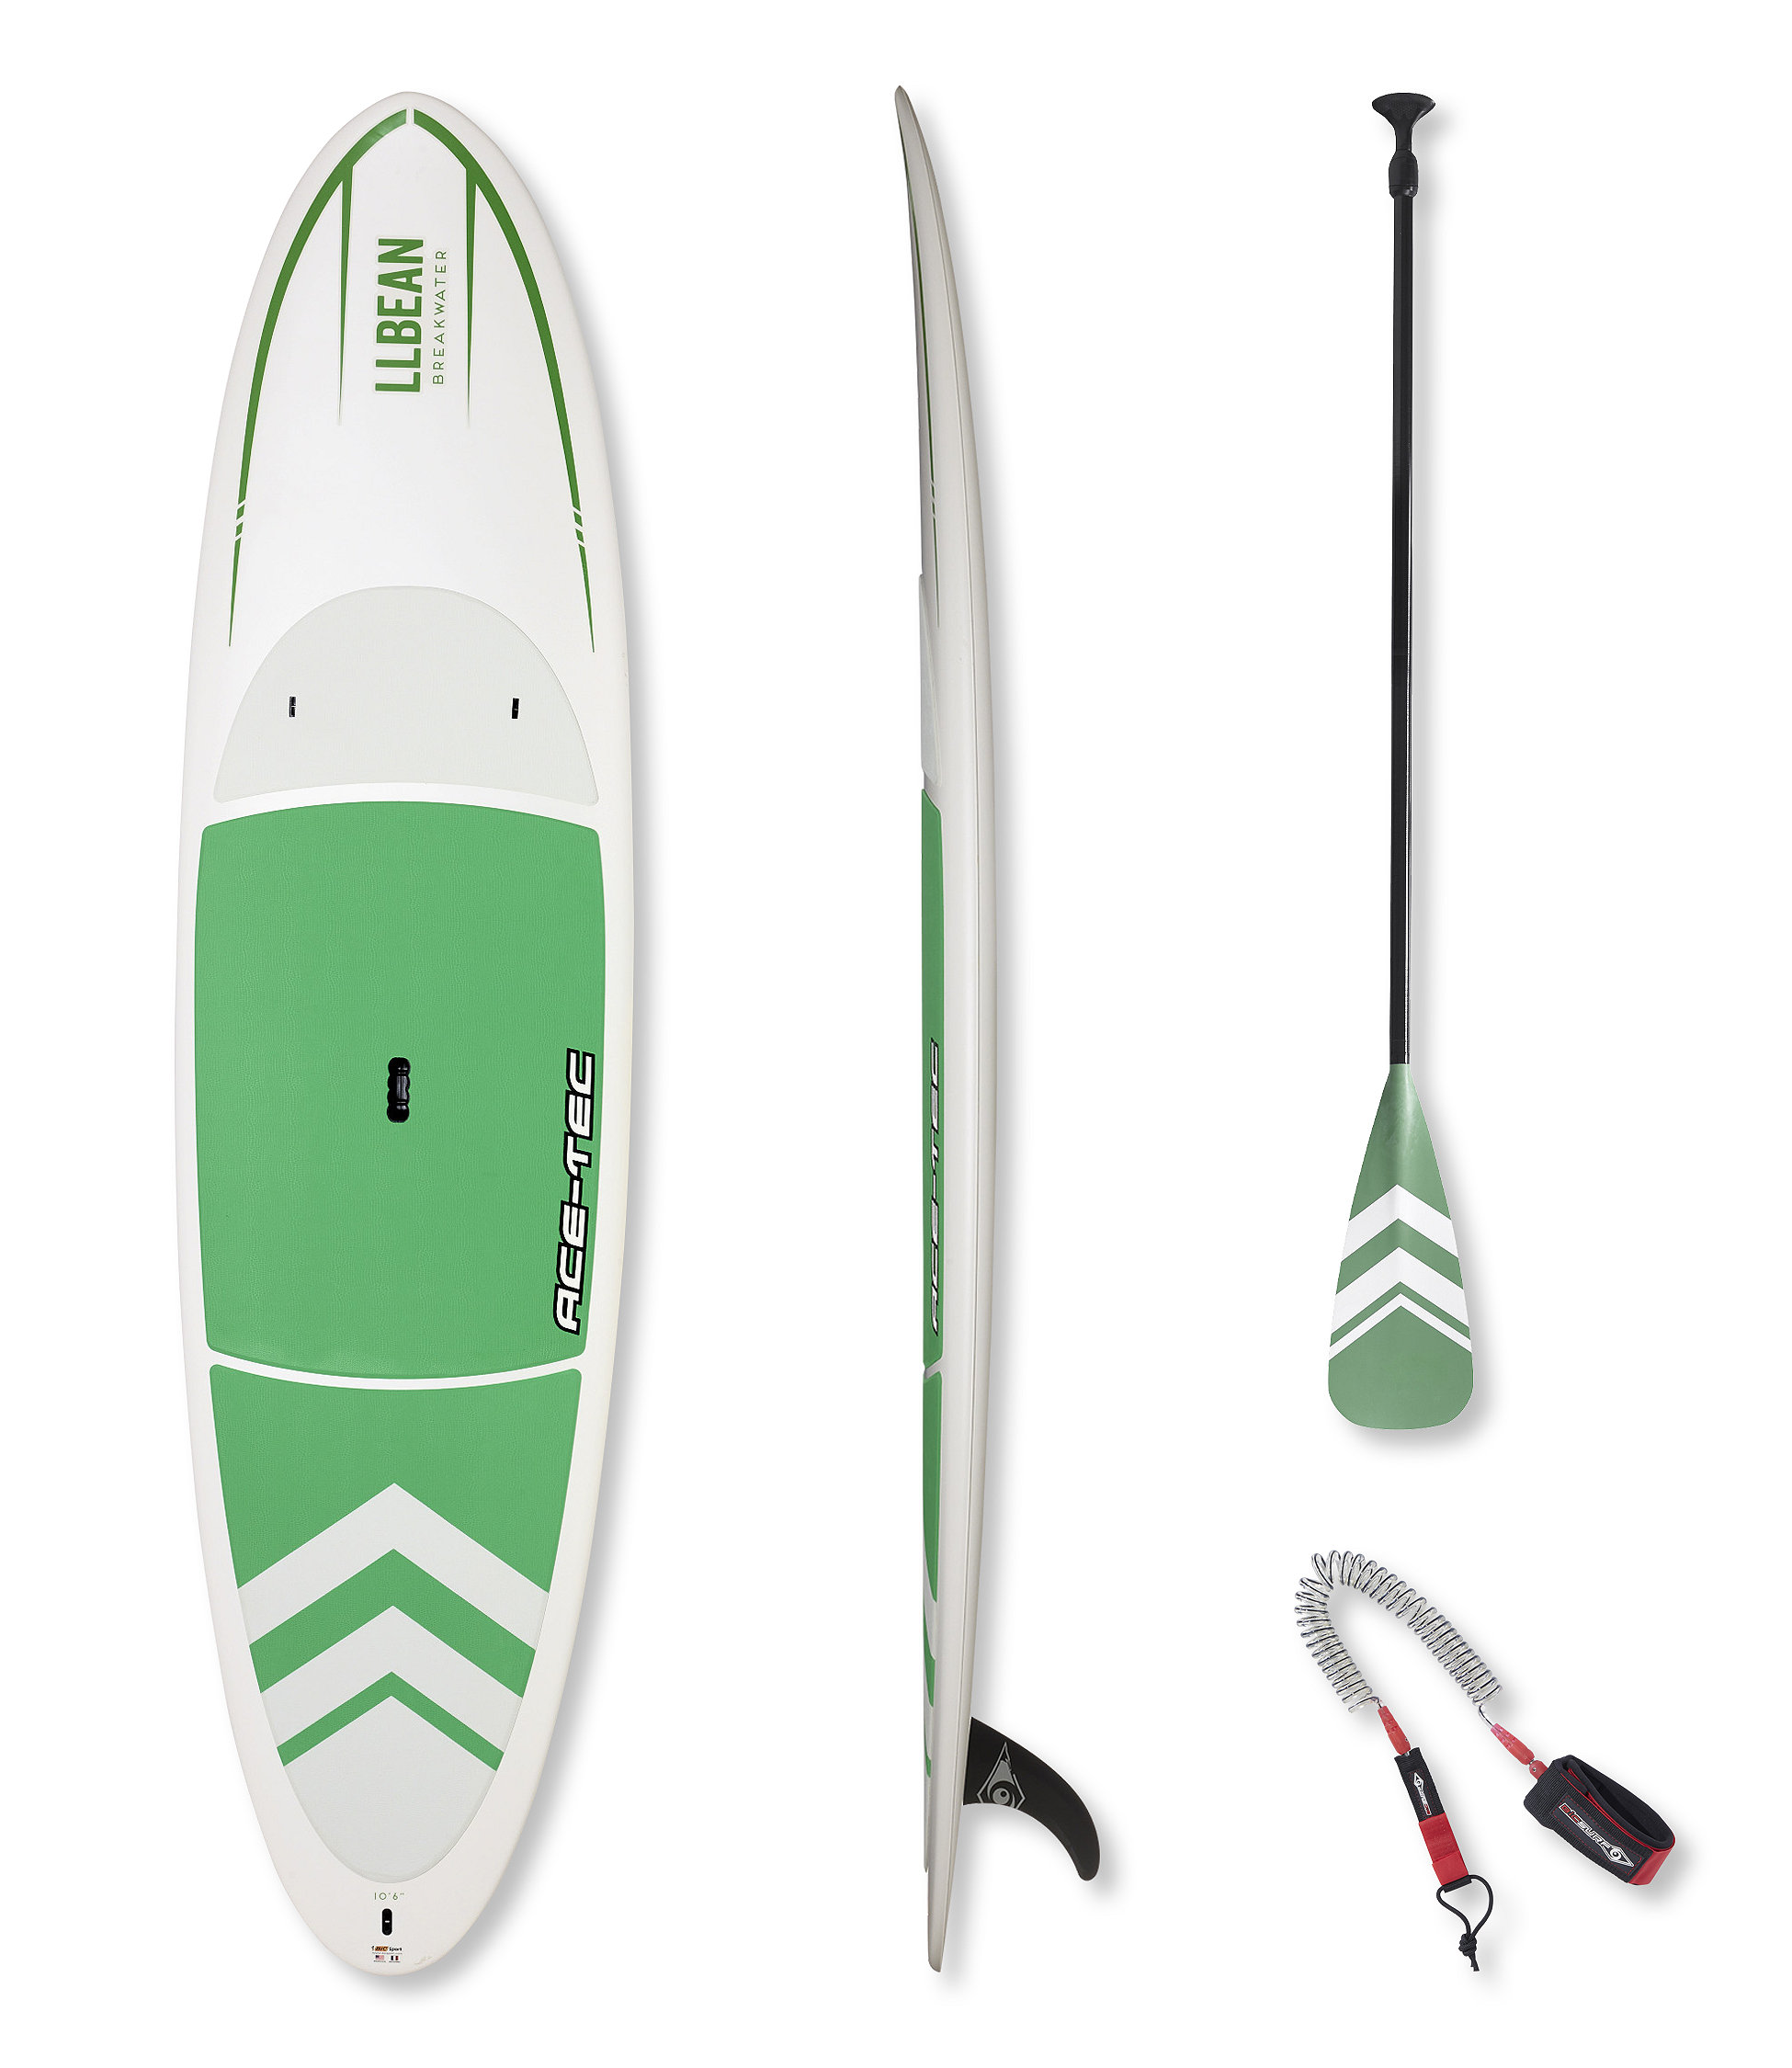 L.L.Bean Breakwater Stand Up Paddle Board Package, 10'6